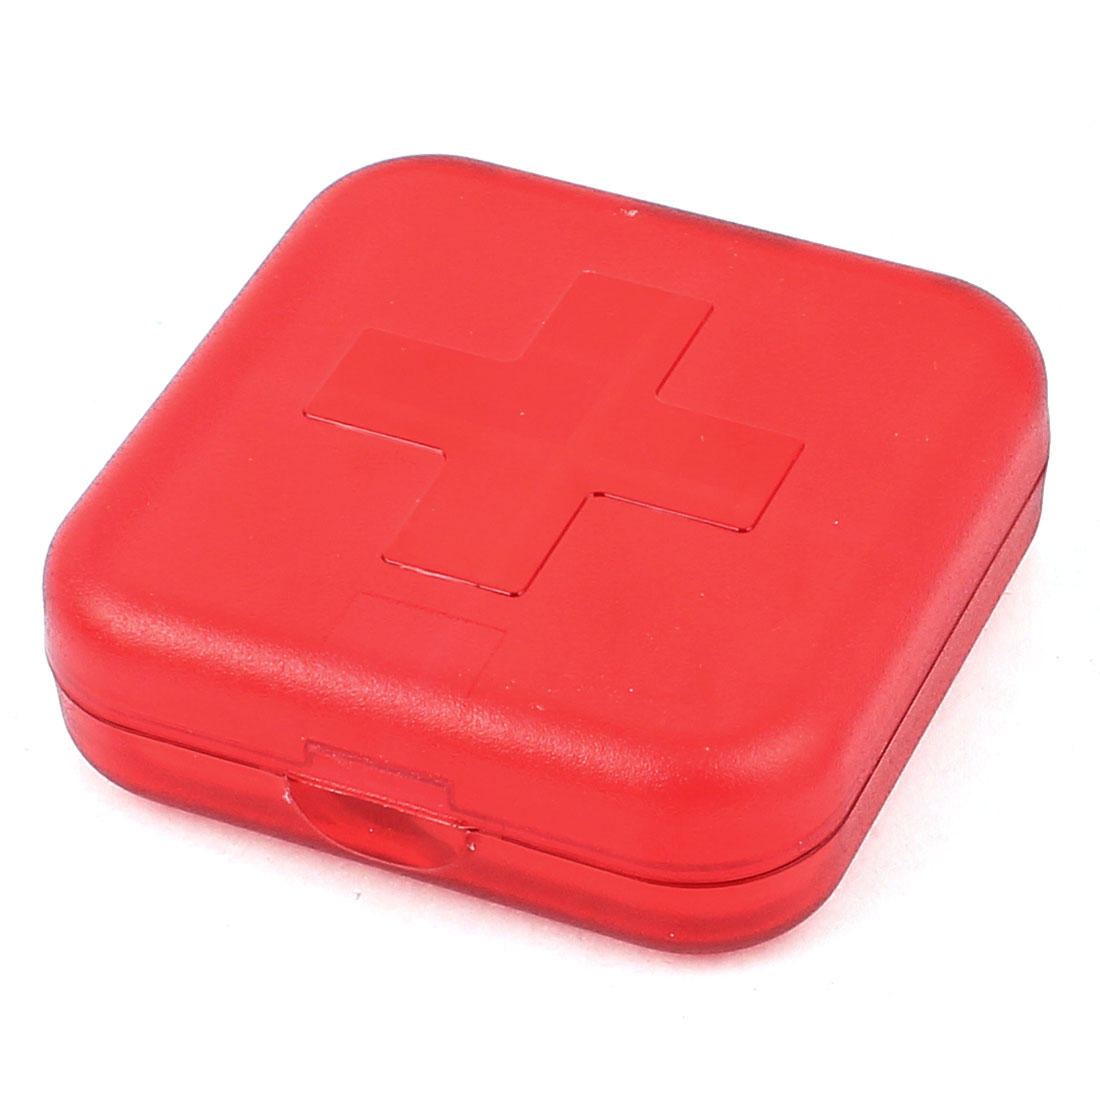 Portable Square 4 Compartments Medicine Pill Box Holder 6.5 x 6.5 x 2cm Red